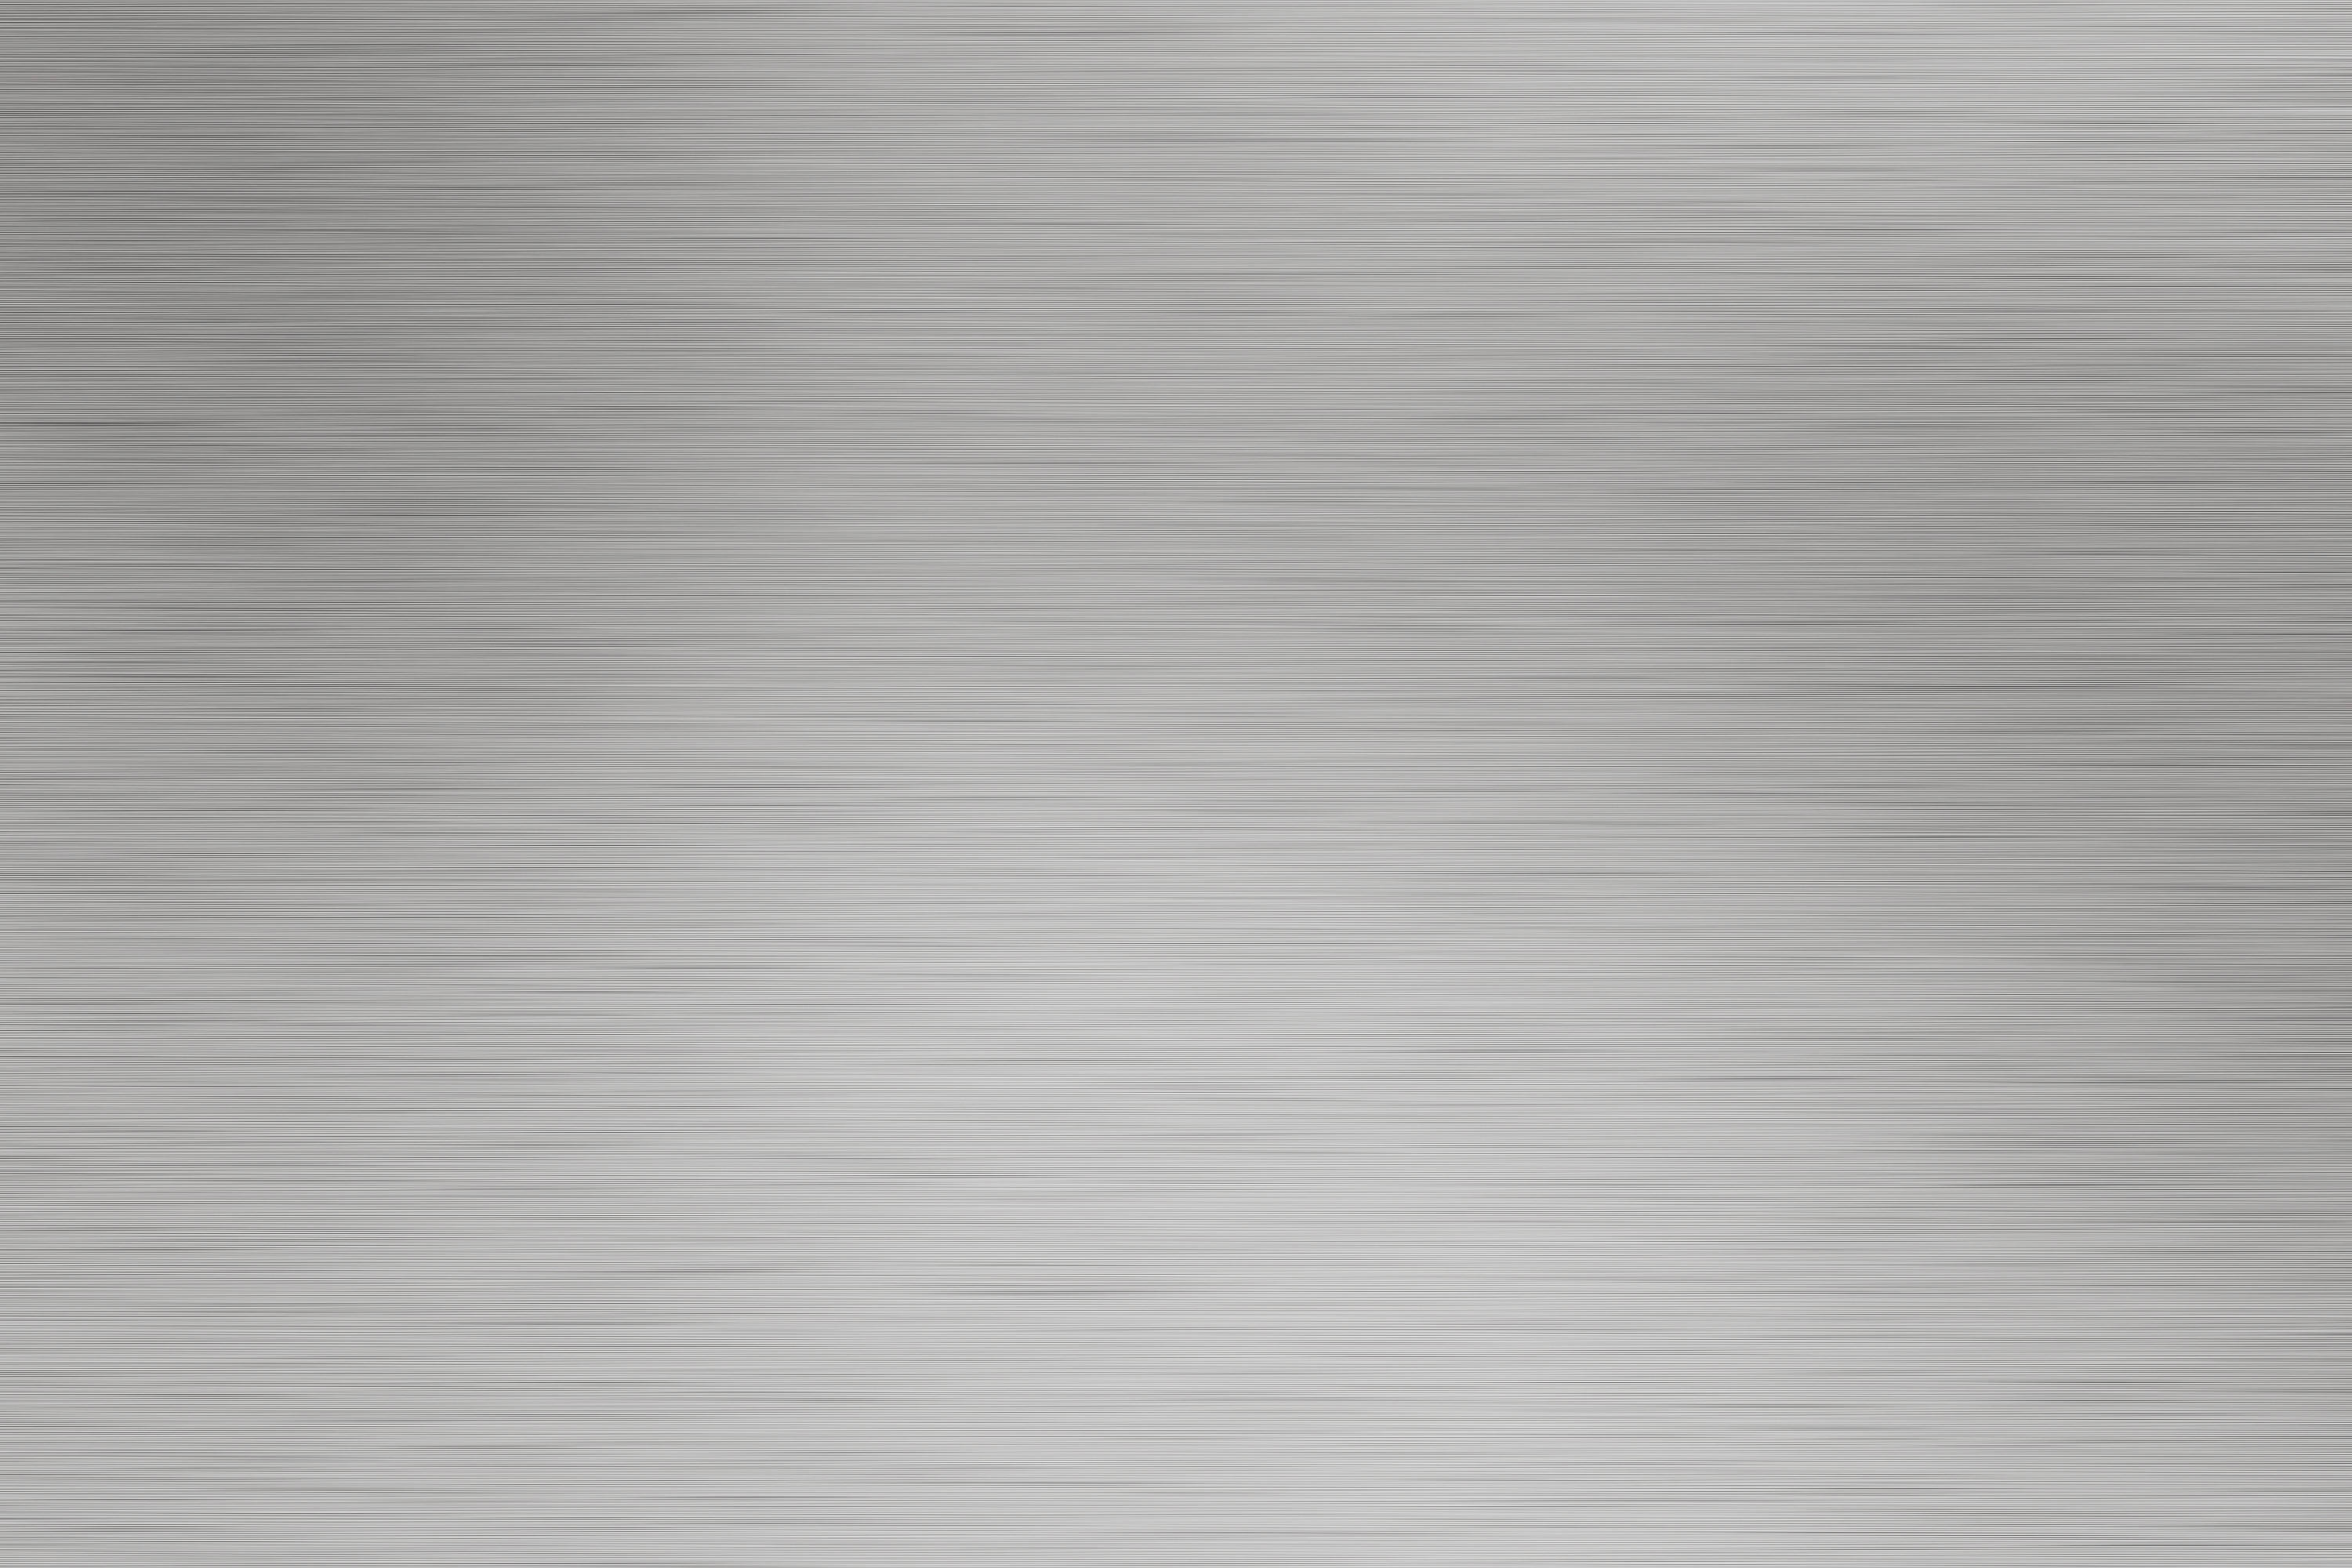 /wp ntent/uploads/2013/01/brushed silver metallic background jpg #